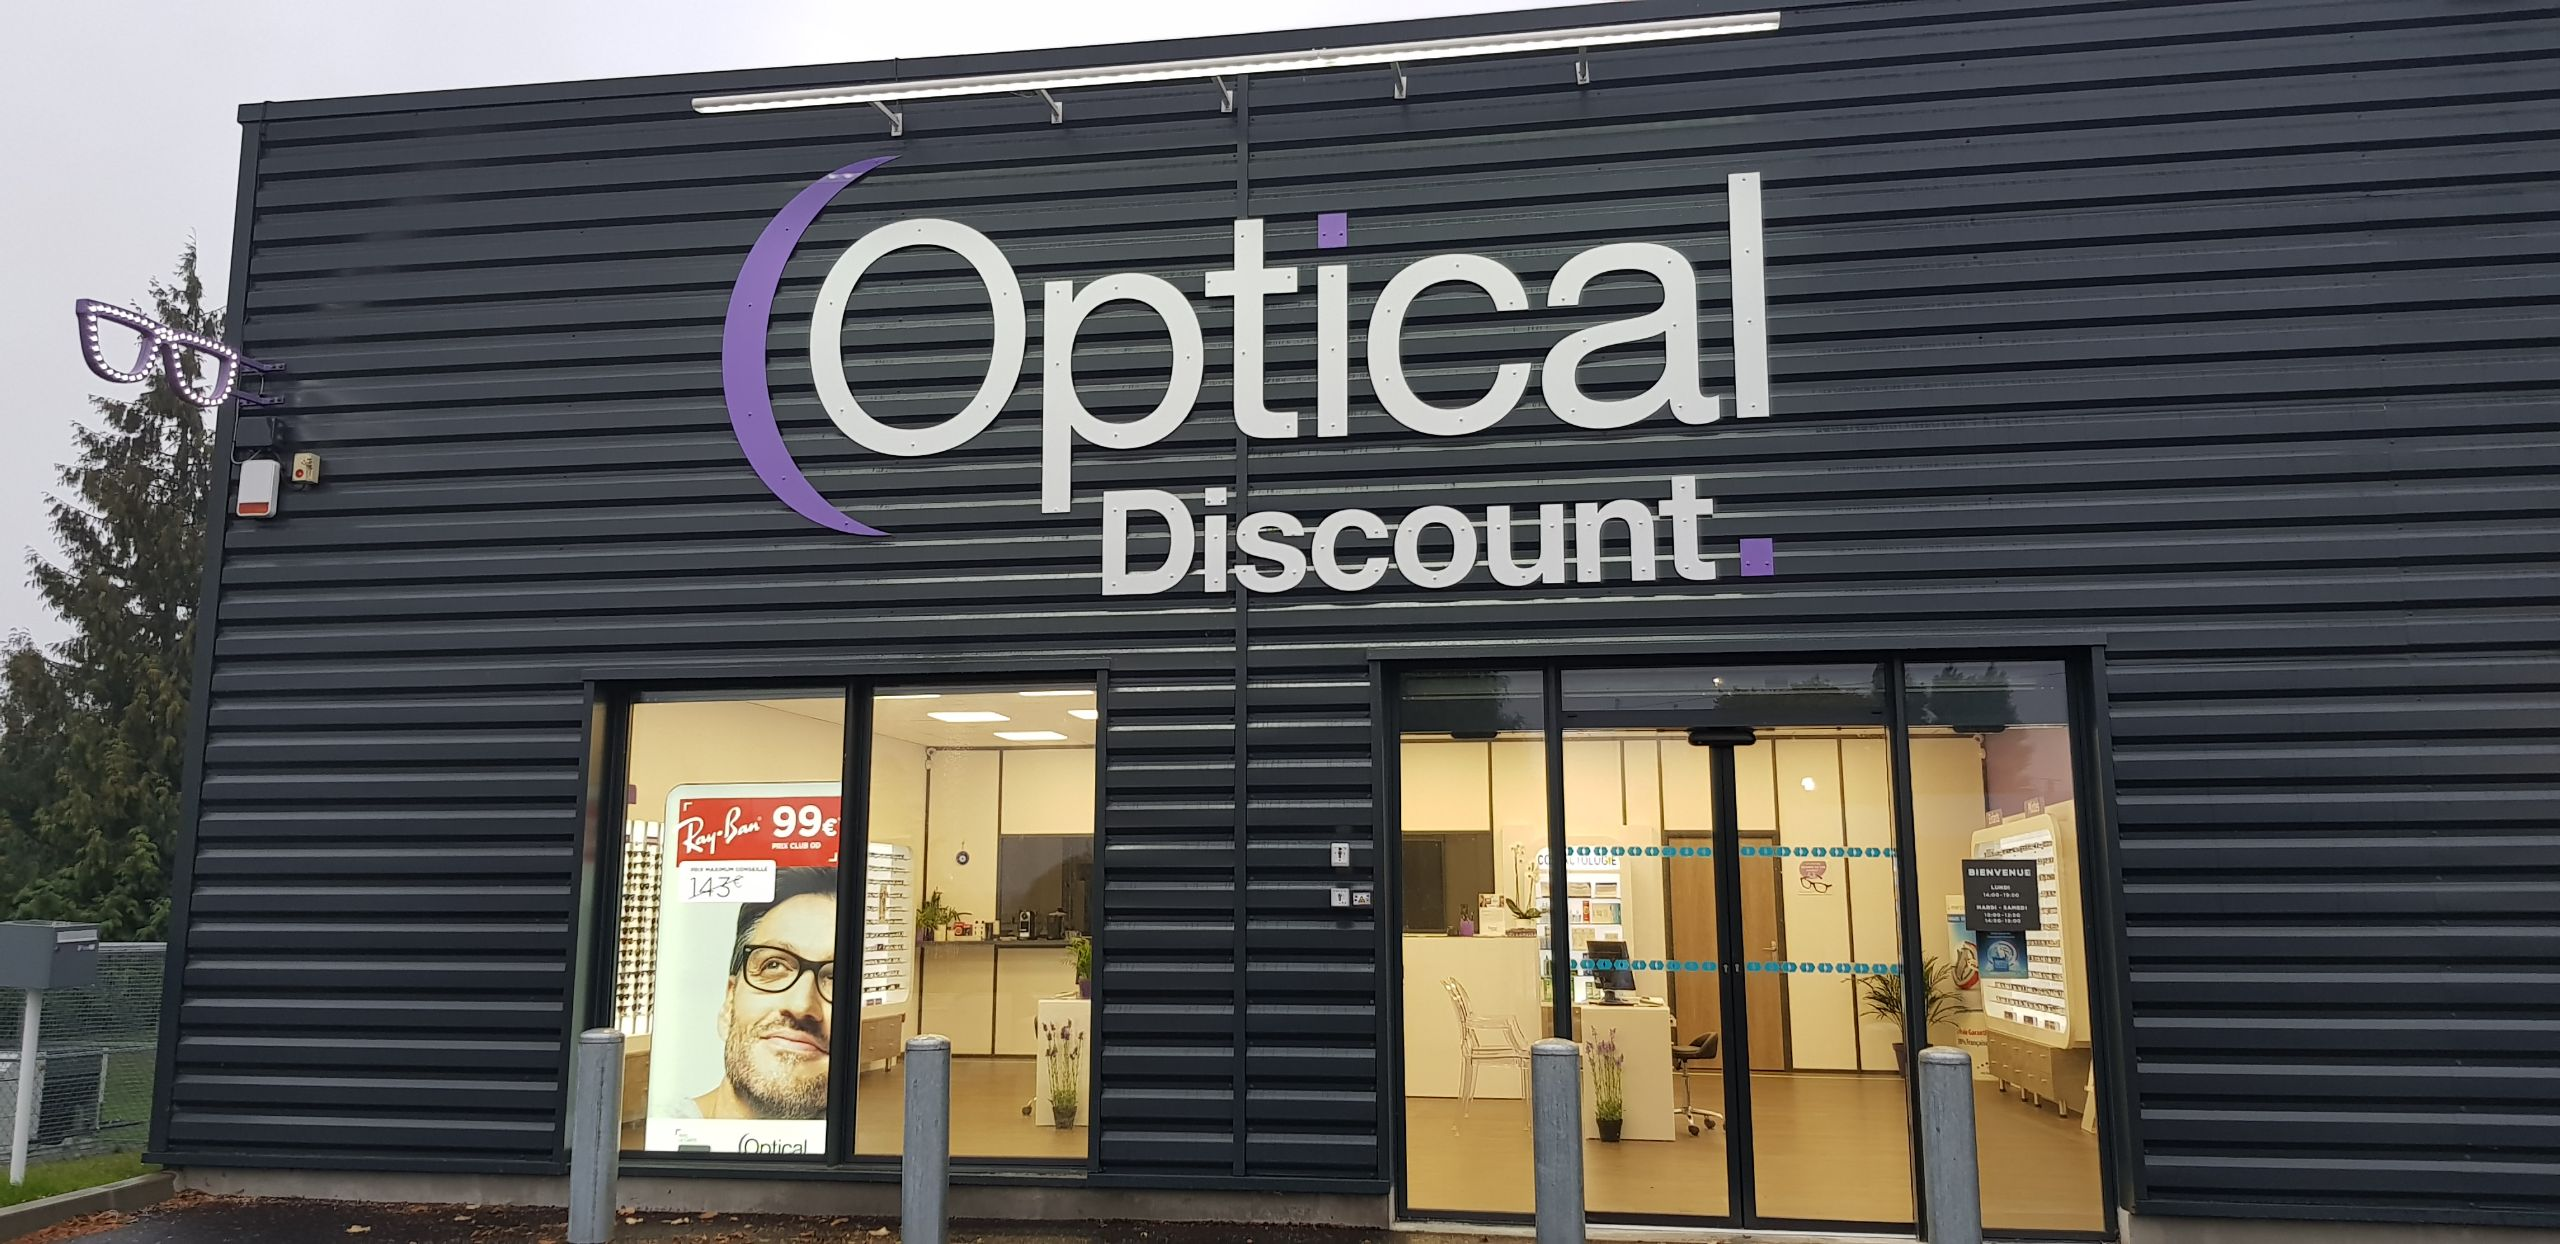 OPTICAL DISCOUNT YVETOT